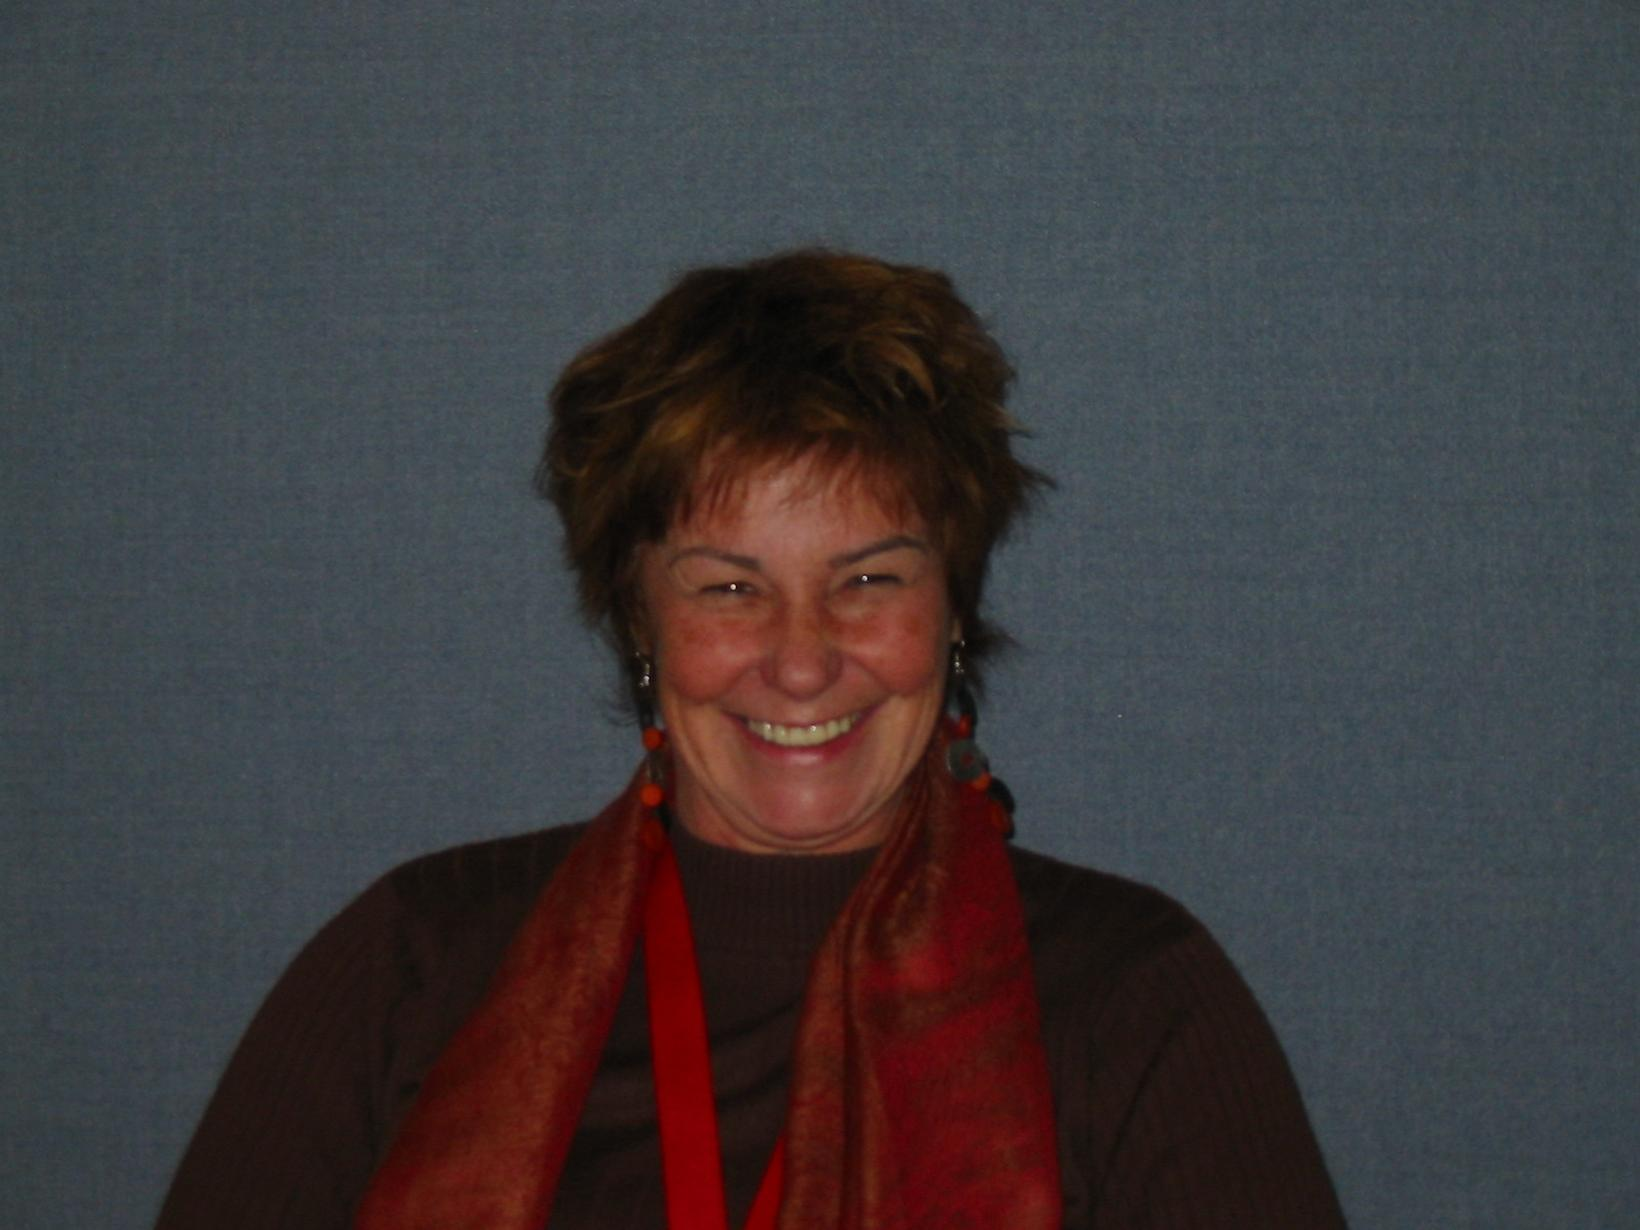 Sue-anne from Adelaide, South Australia, Australia